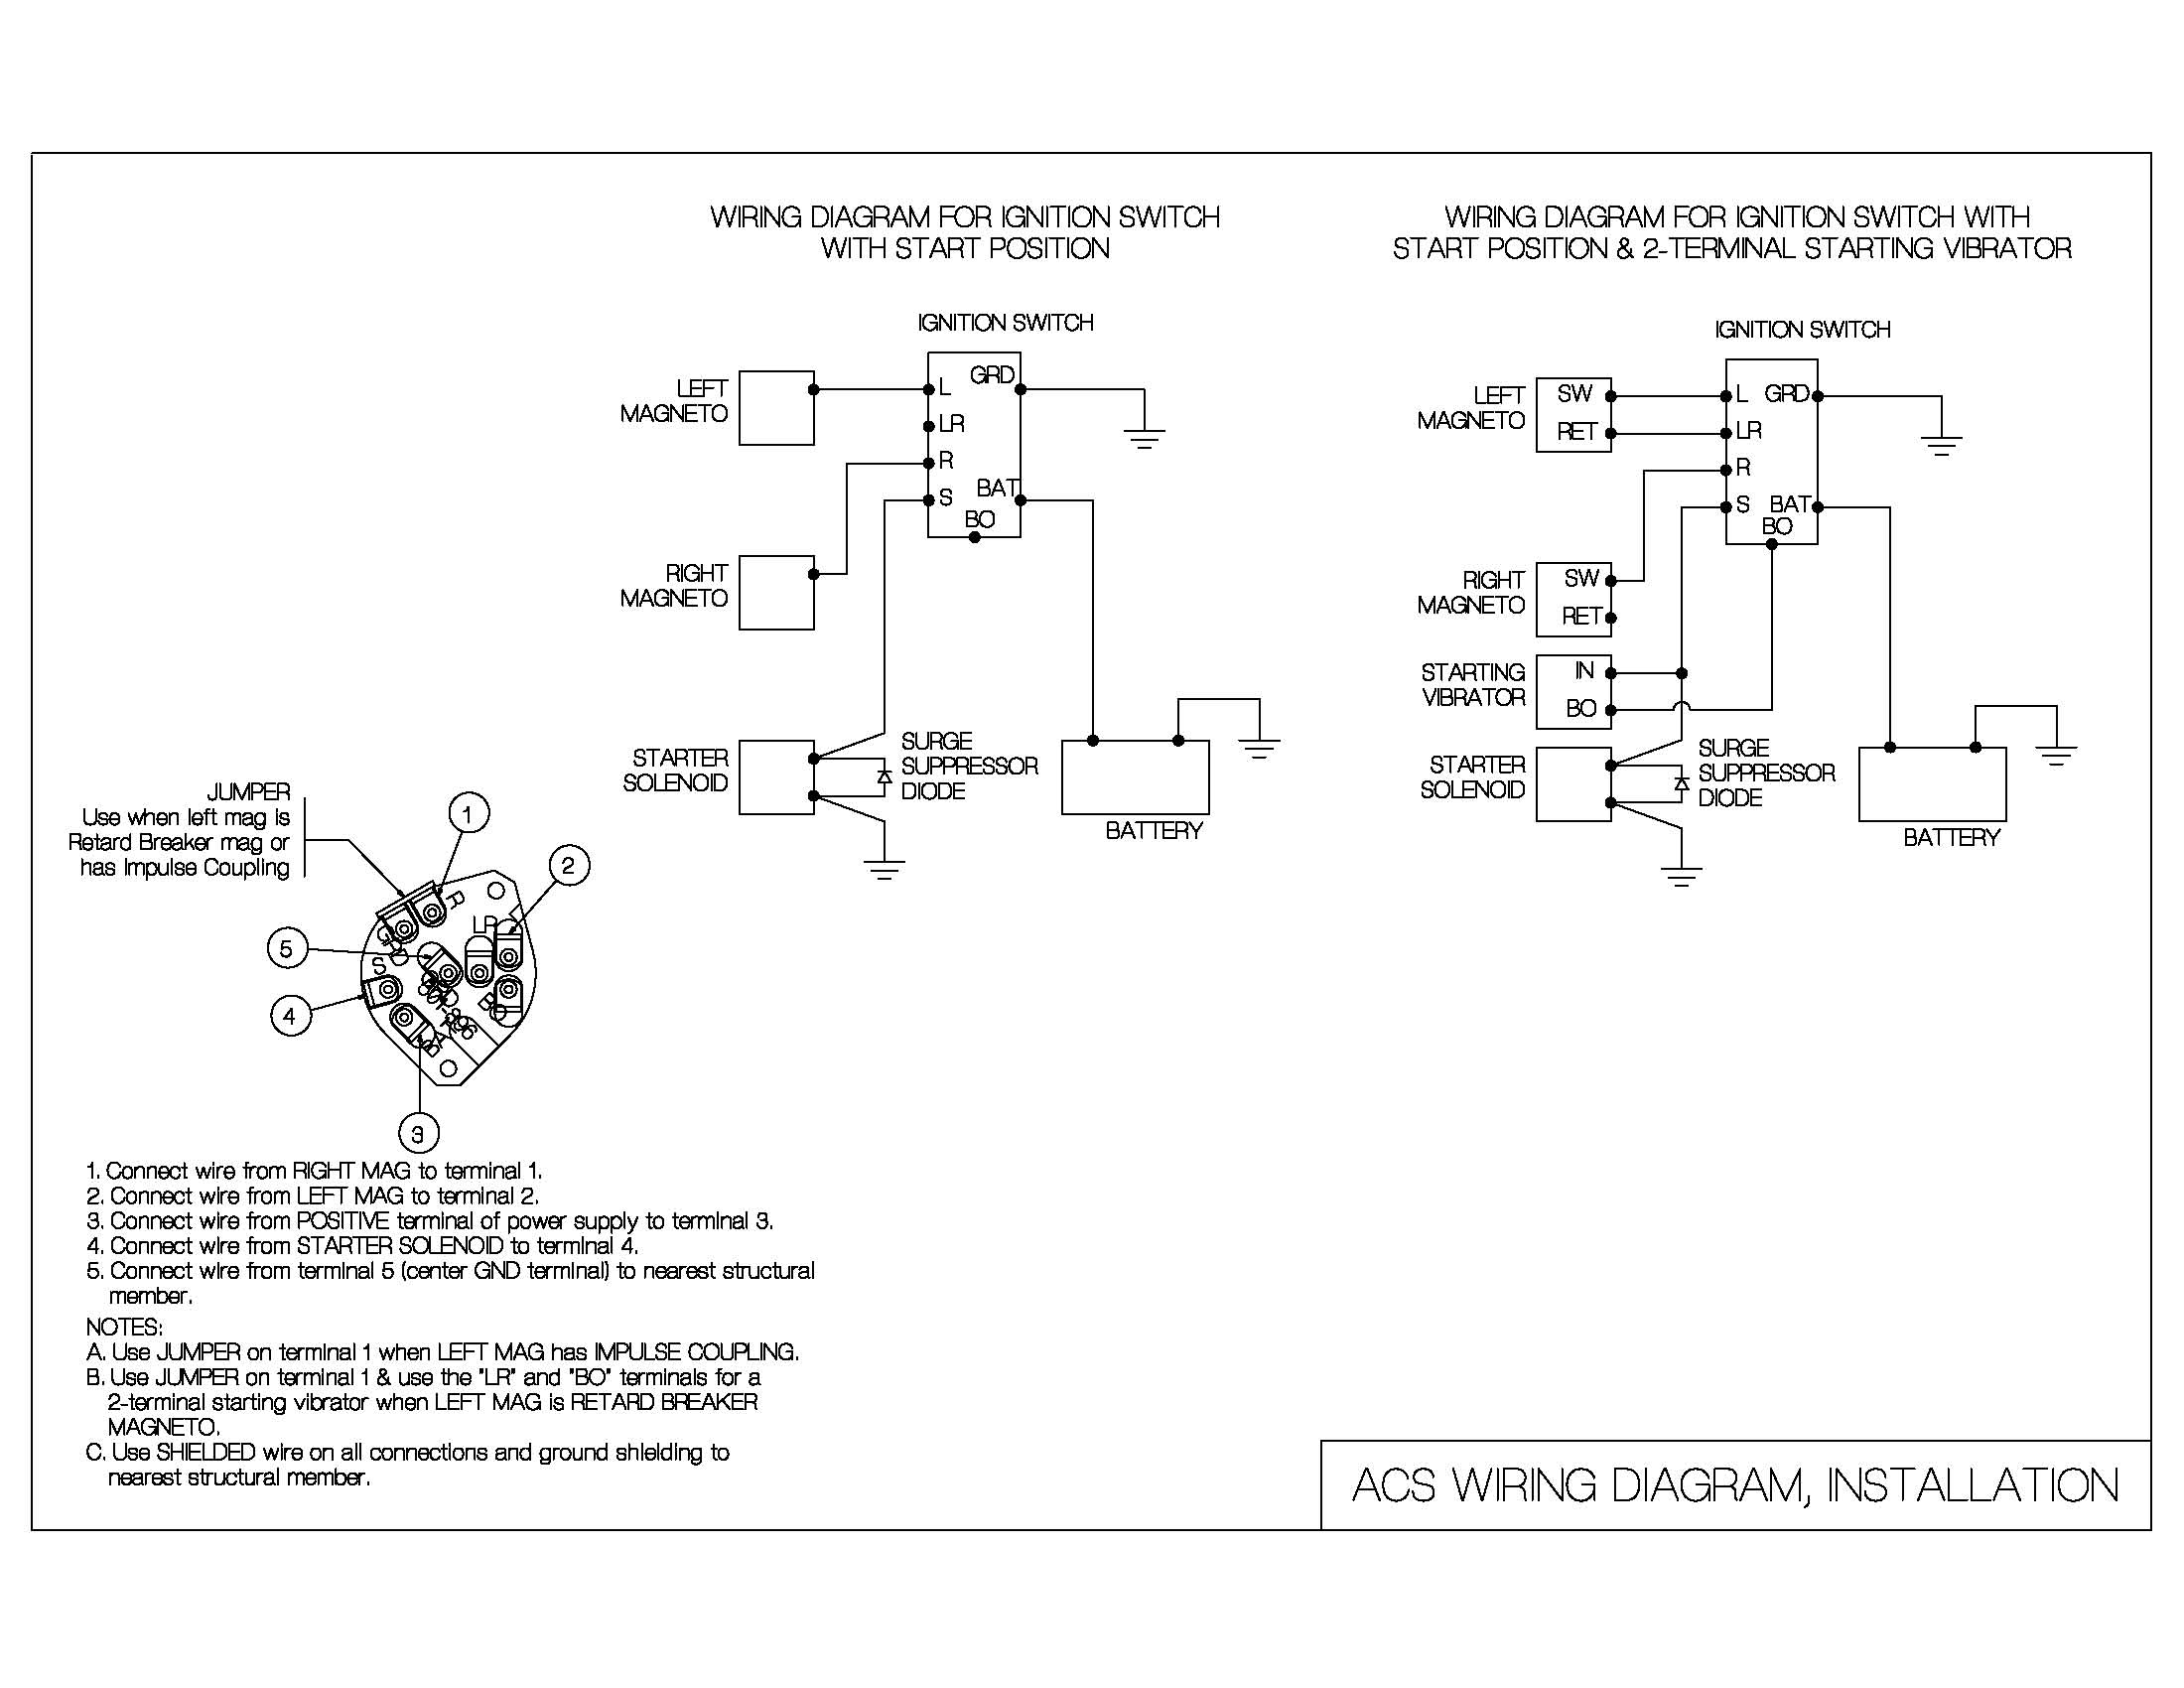 Wiring Diagram hampton bay switch wiring diagram hampton bay pull chain diagram LR 79596 at mifinder.co